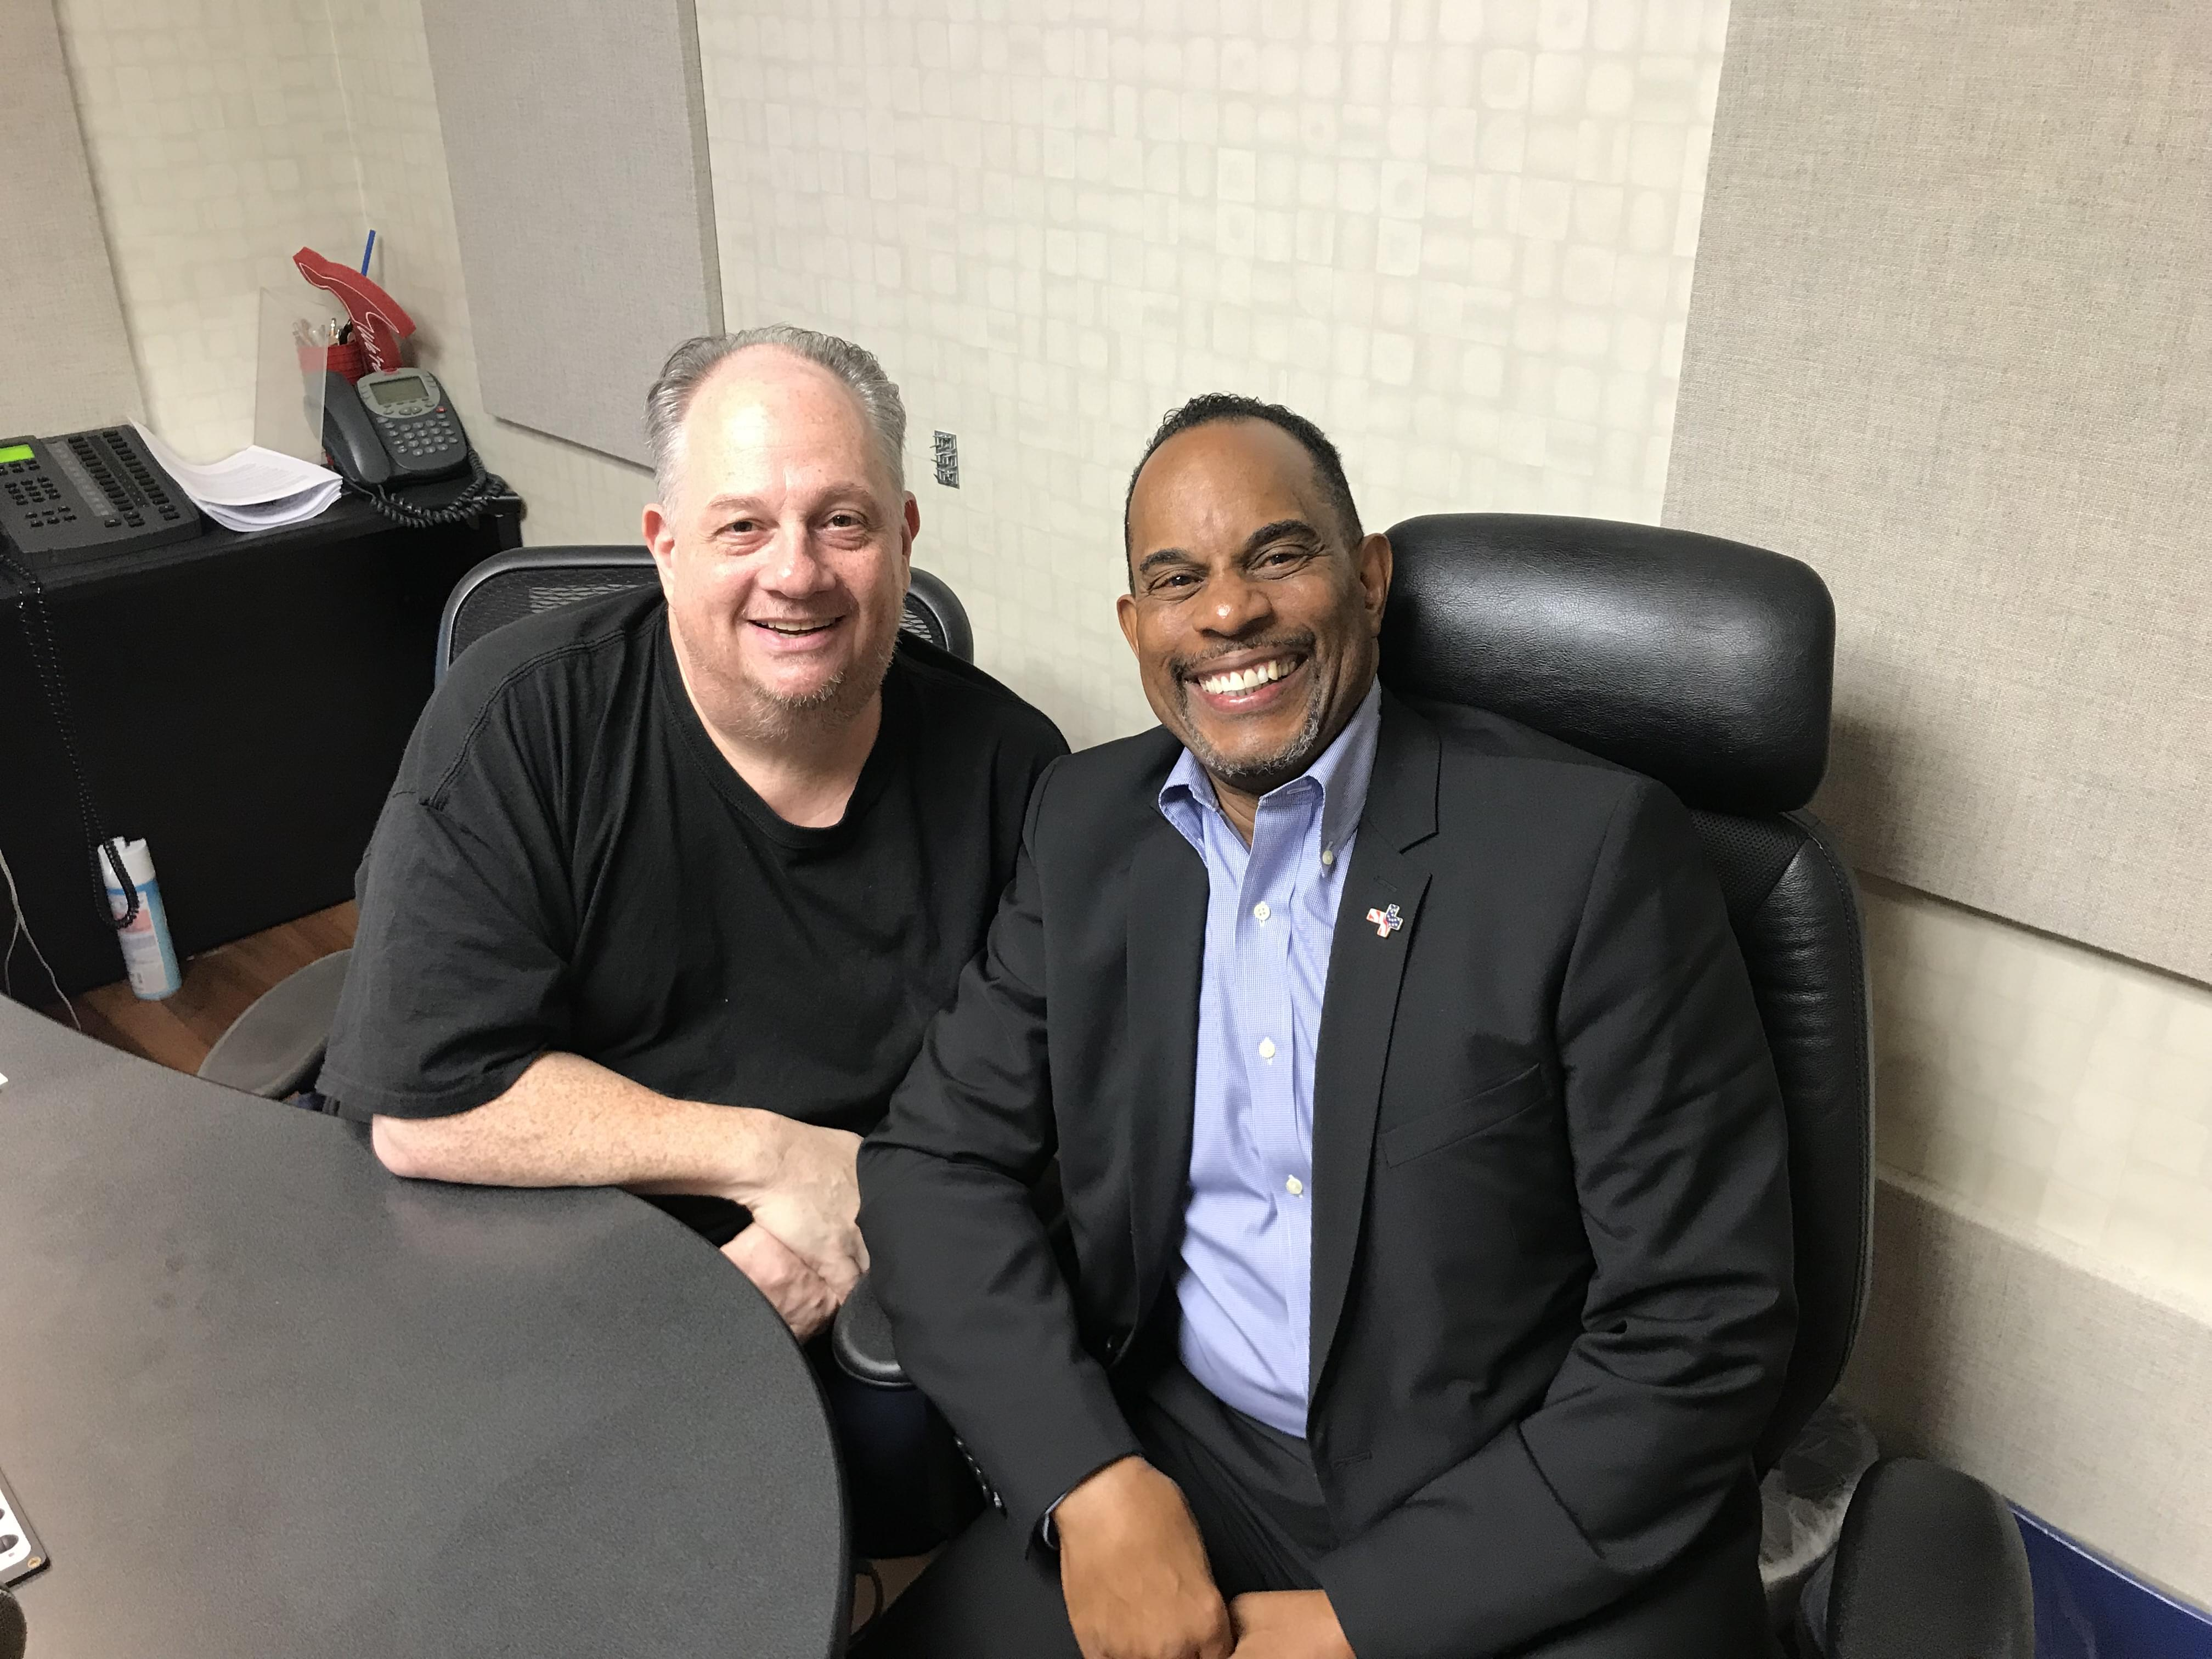 Connecticut Today with Paul Pacelli: John Rodriguez, Sen. Kevin Kelly, and Much More